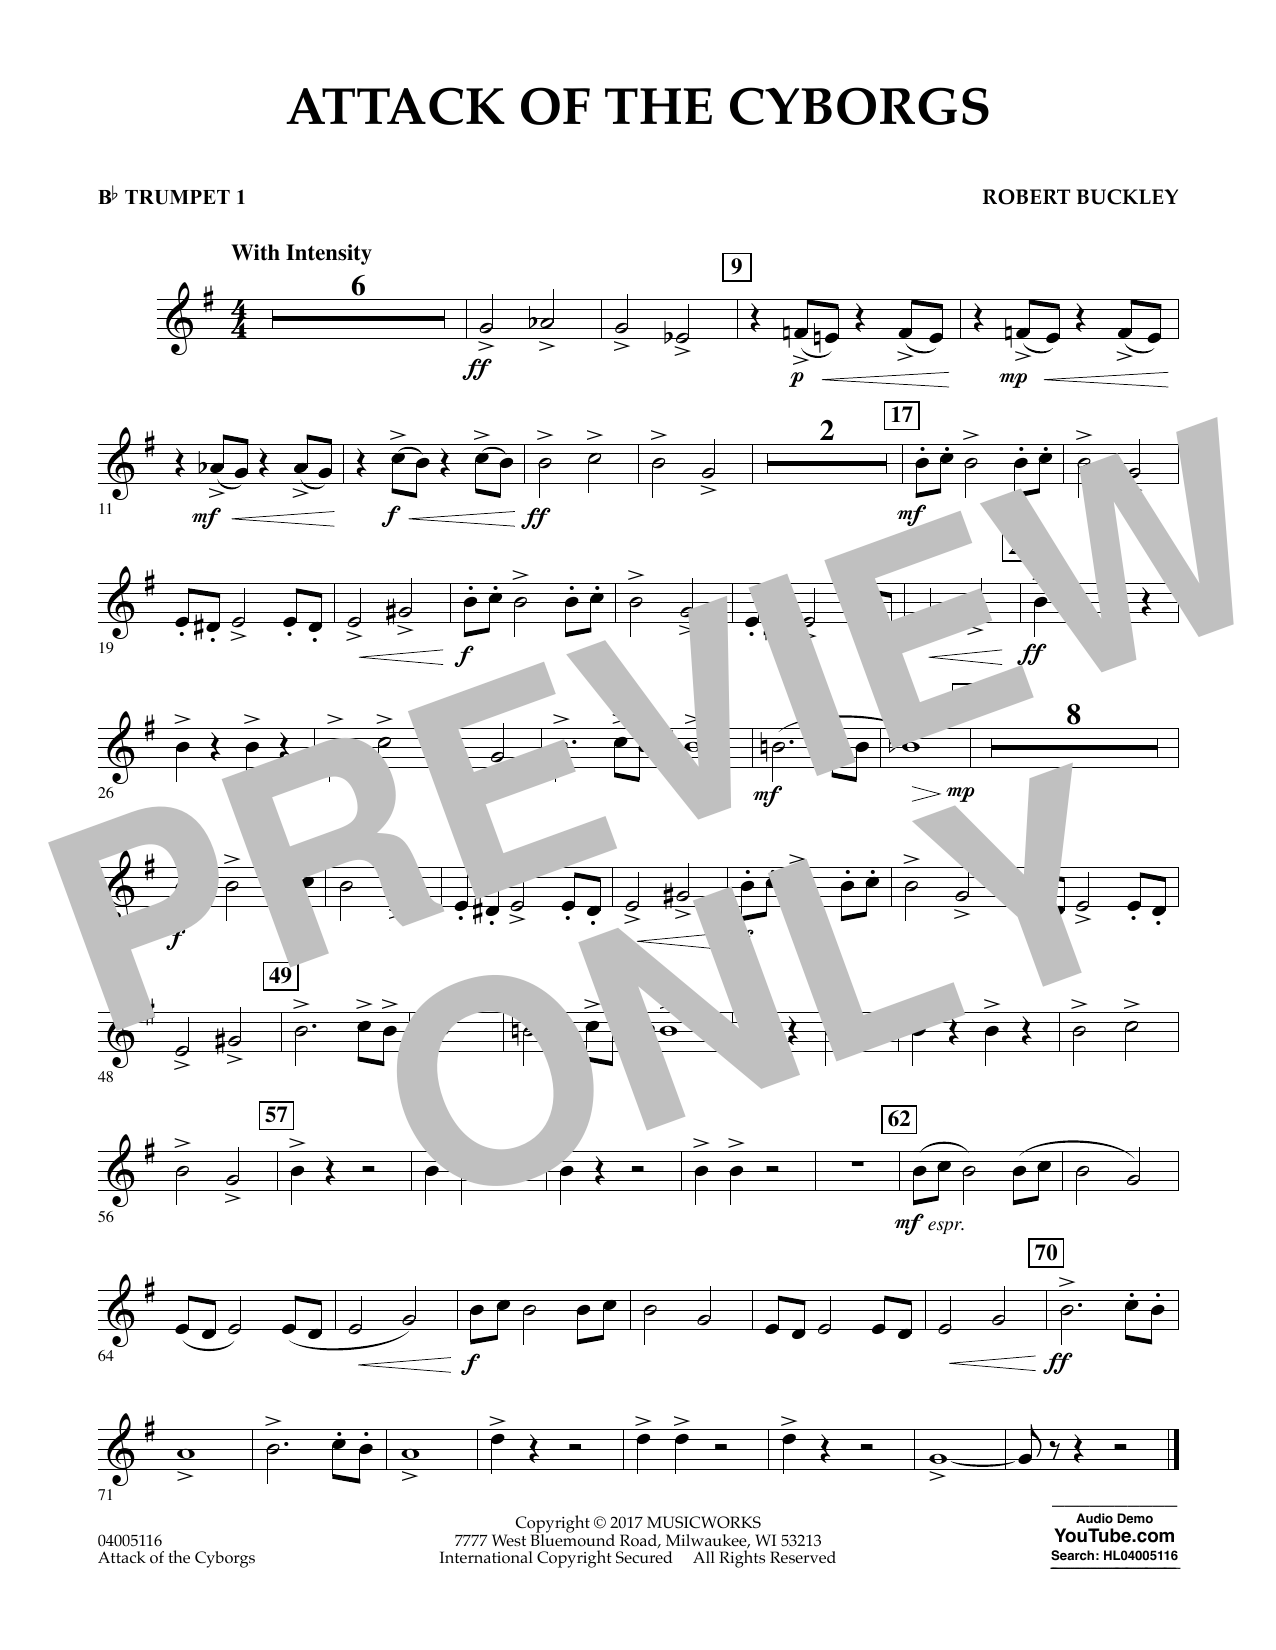 Robert Buckley Attack of the Cyborgs - Bb Trumpet 1 sheet music notes and chords. Download Printable PDF.